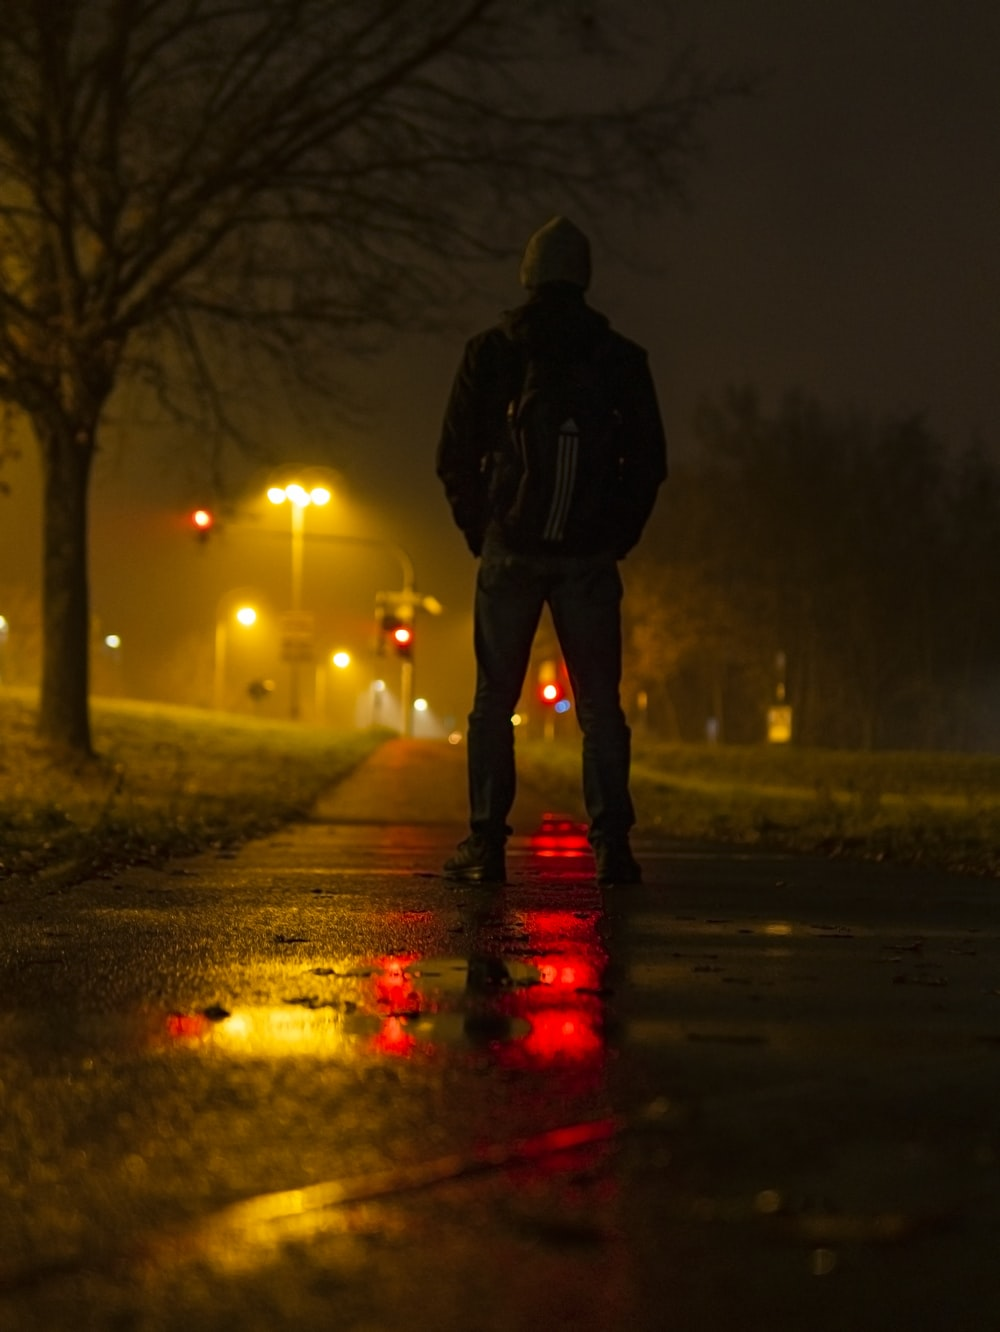 man in black jacket standing on road during night time